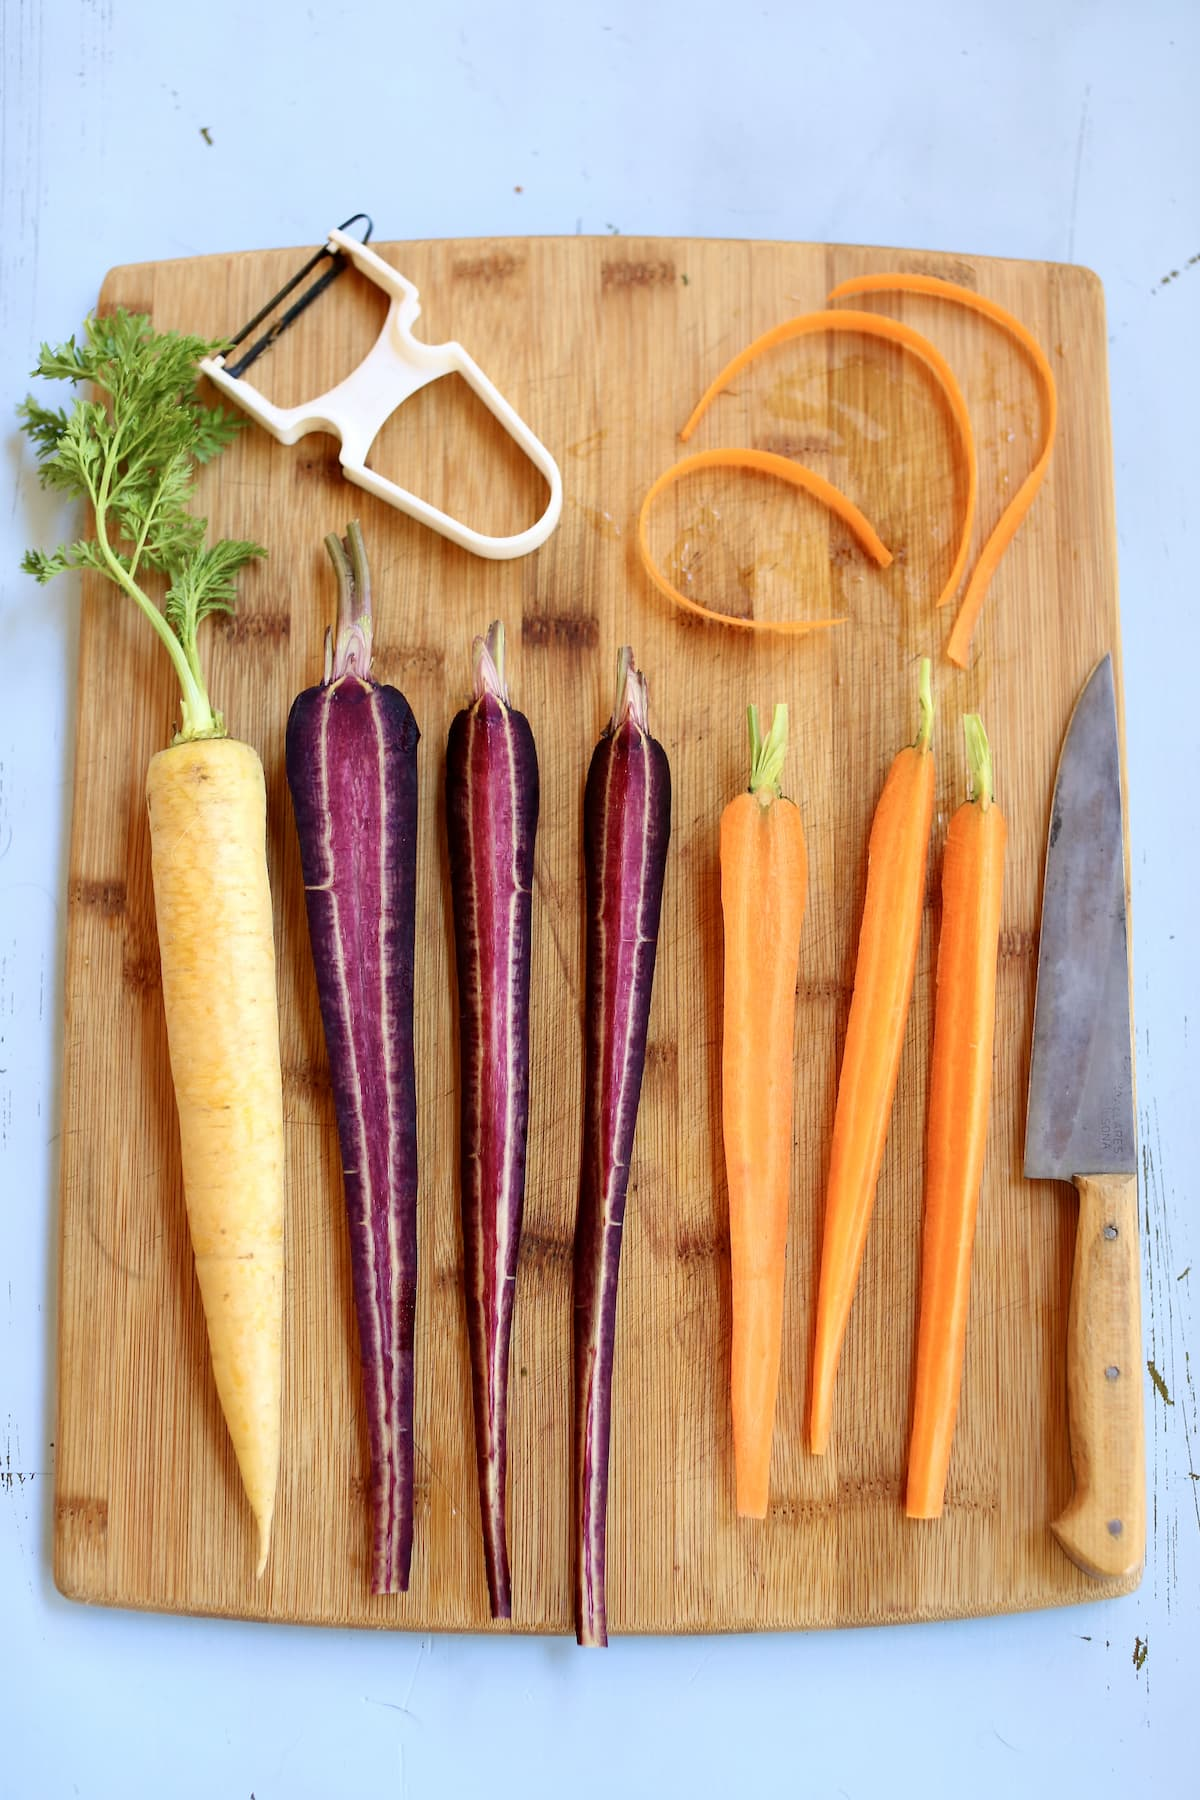 a cutting board with 7 carrots, yellow purple and orange, with a vegetable peeler and a knife.